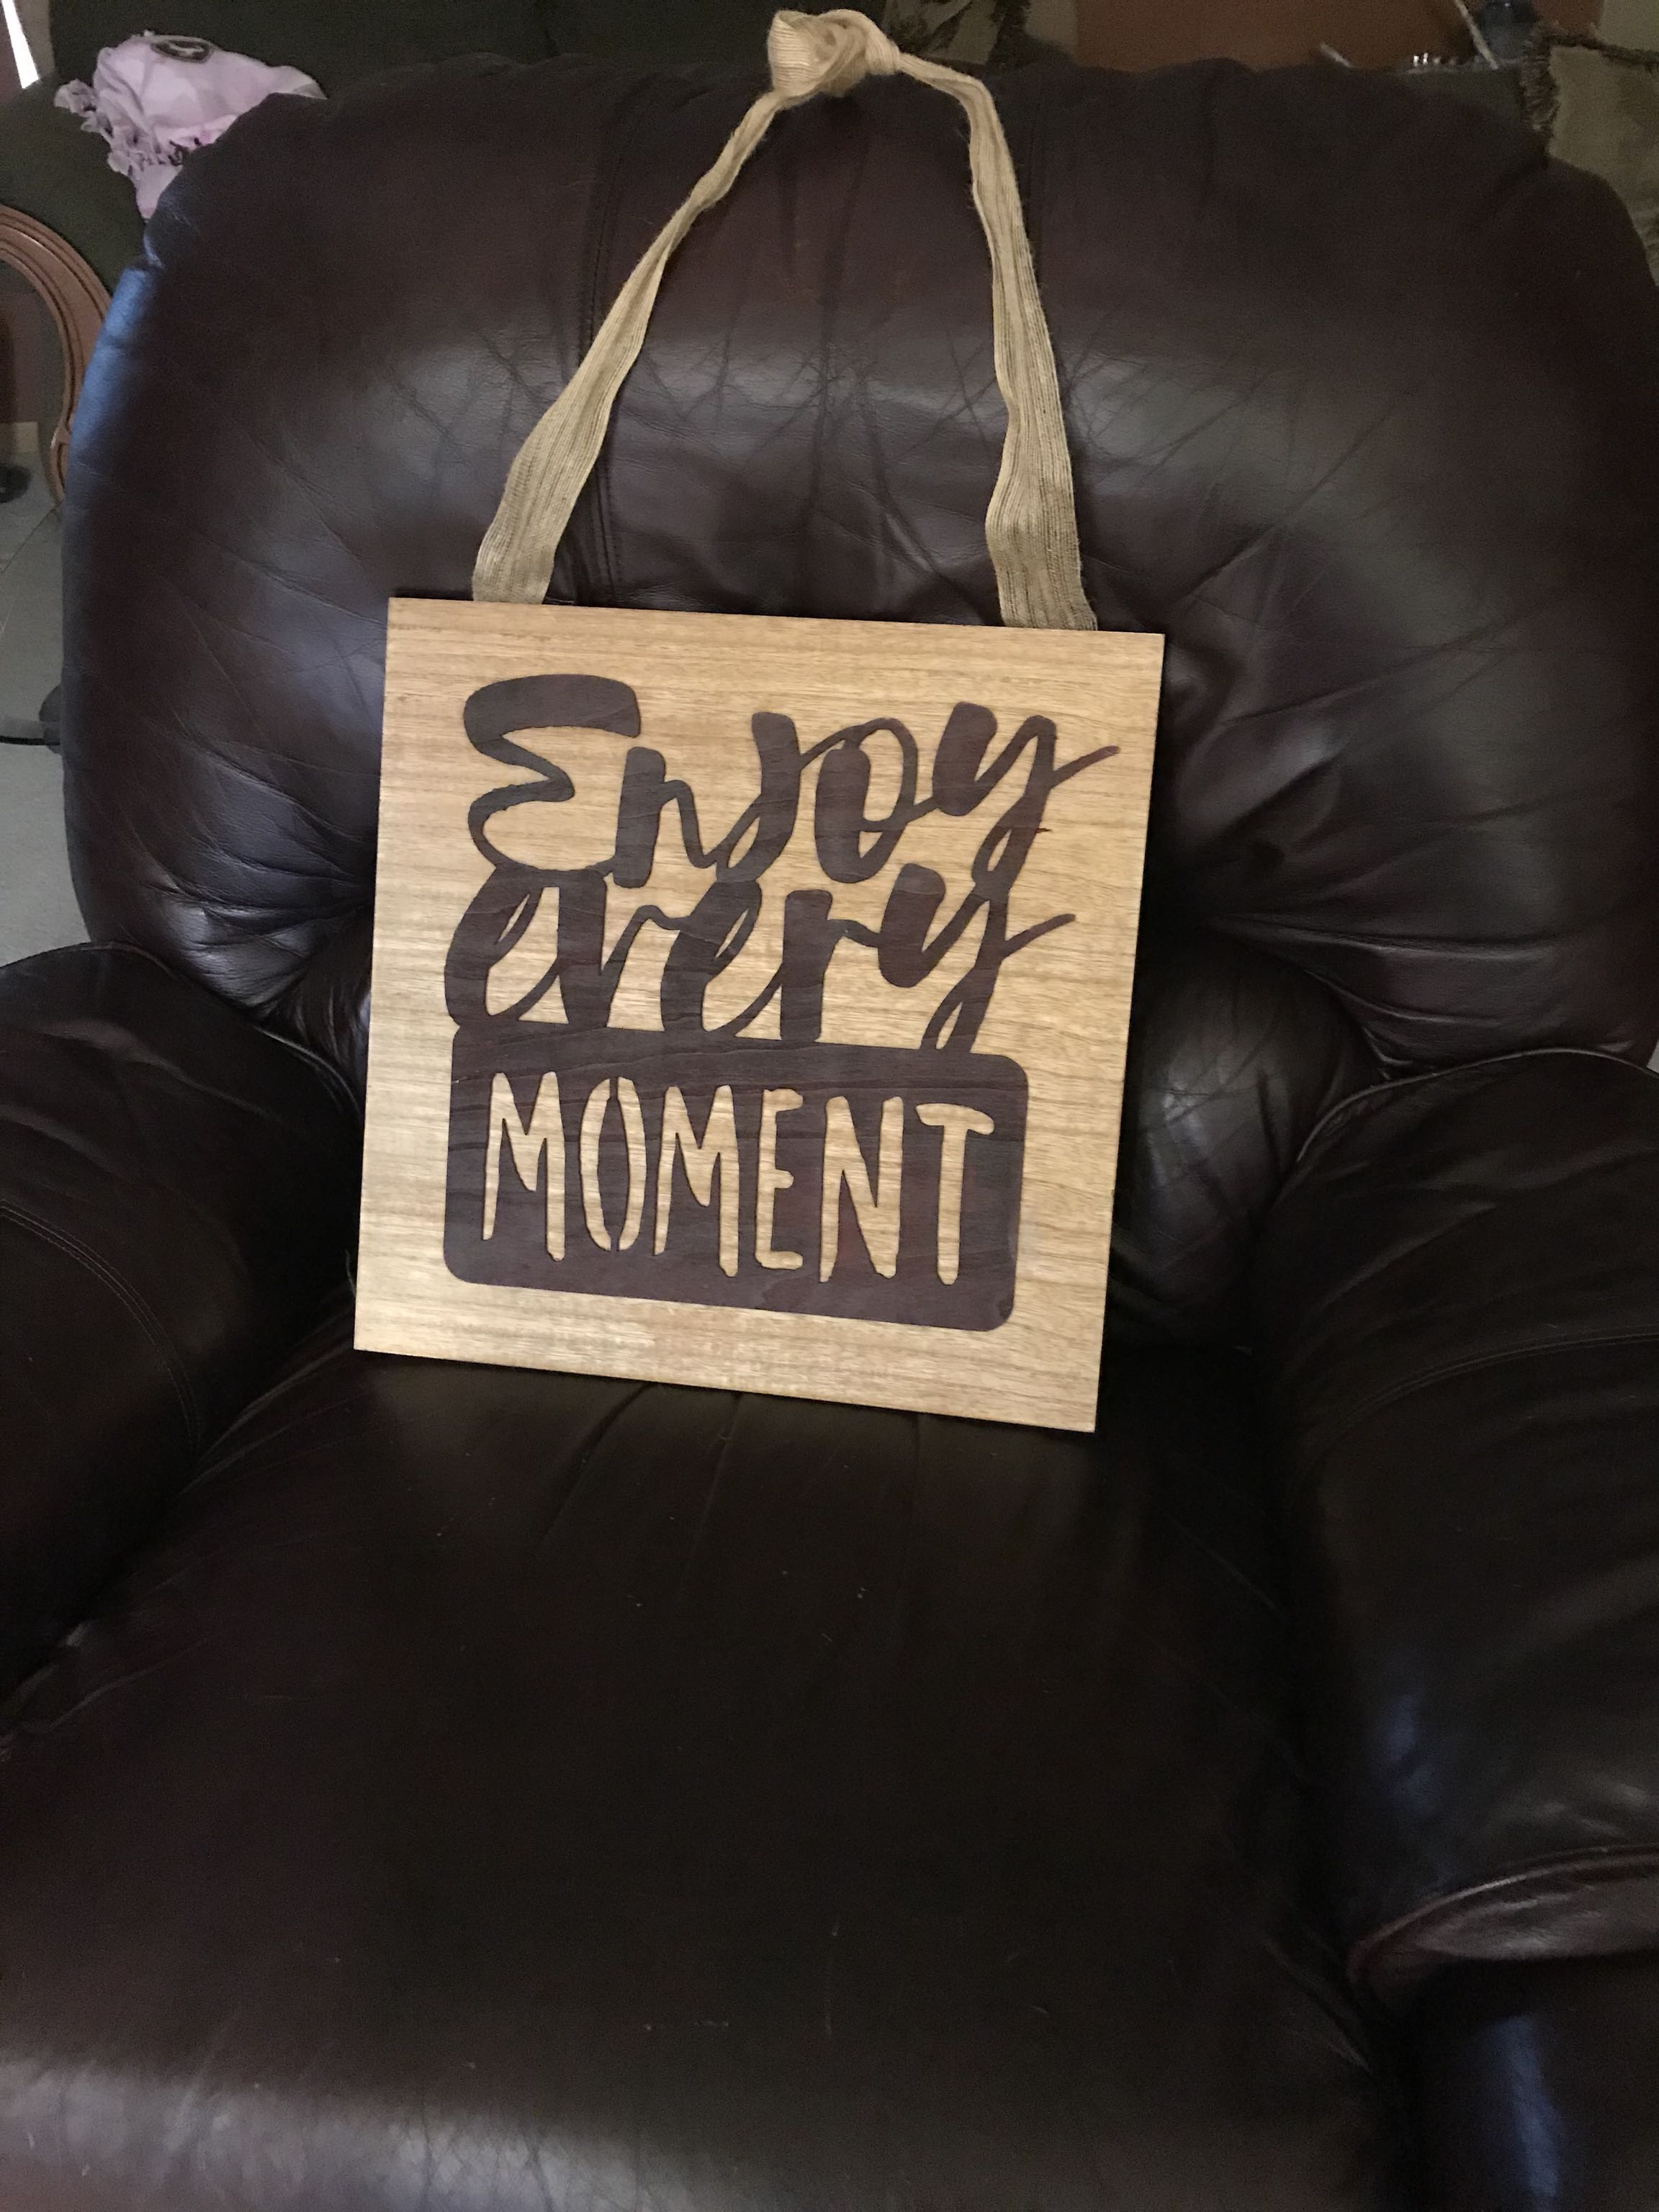 Very cute sign says enjoy every moment